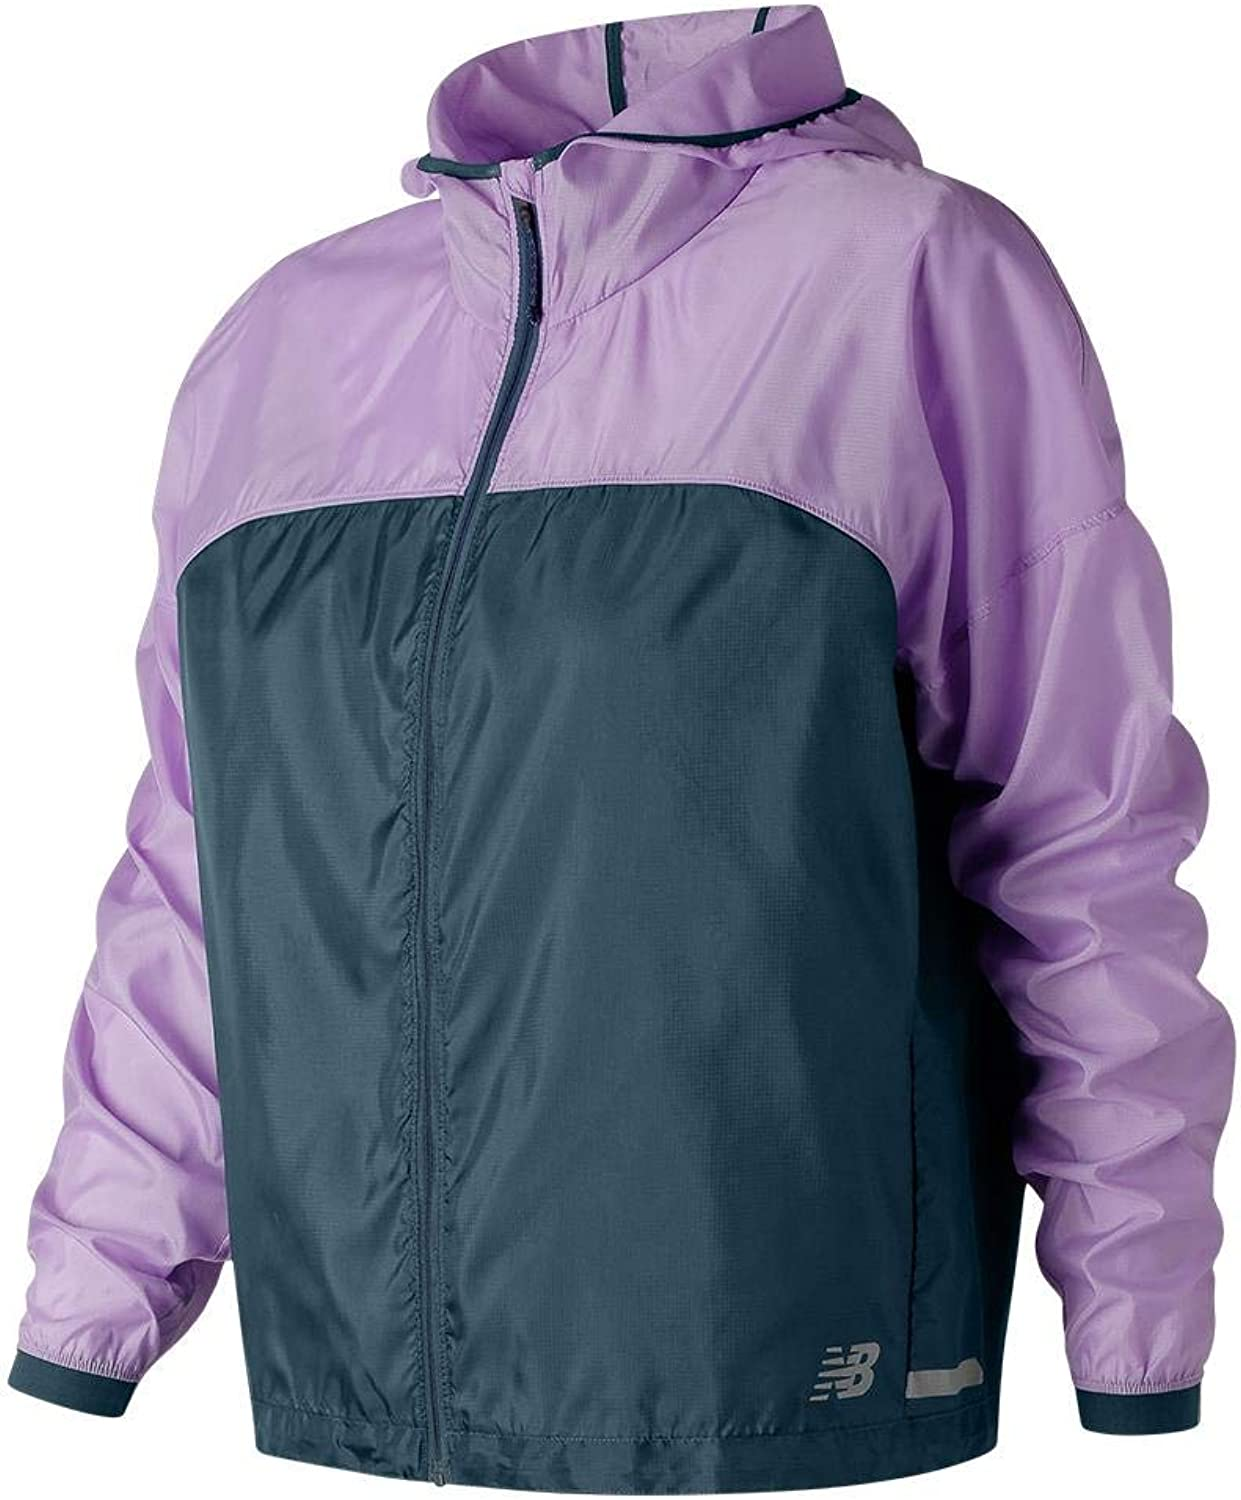 New Balance Womens Full Zip Hooded Lightweight Running PackJacket